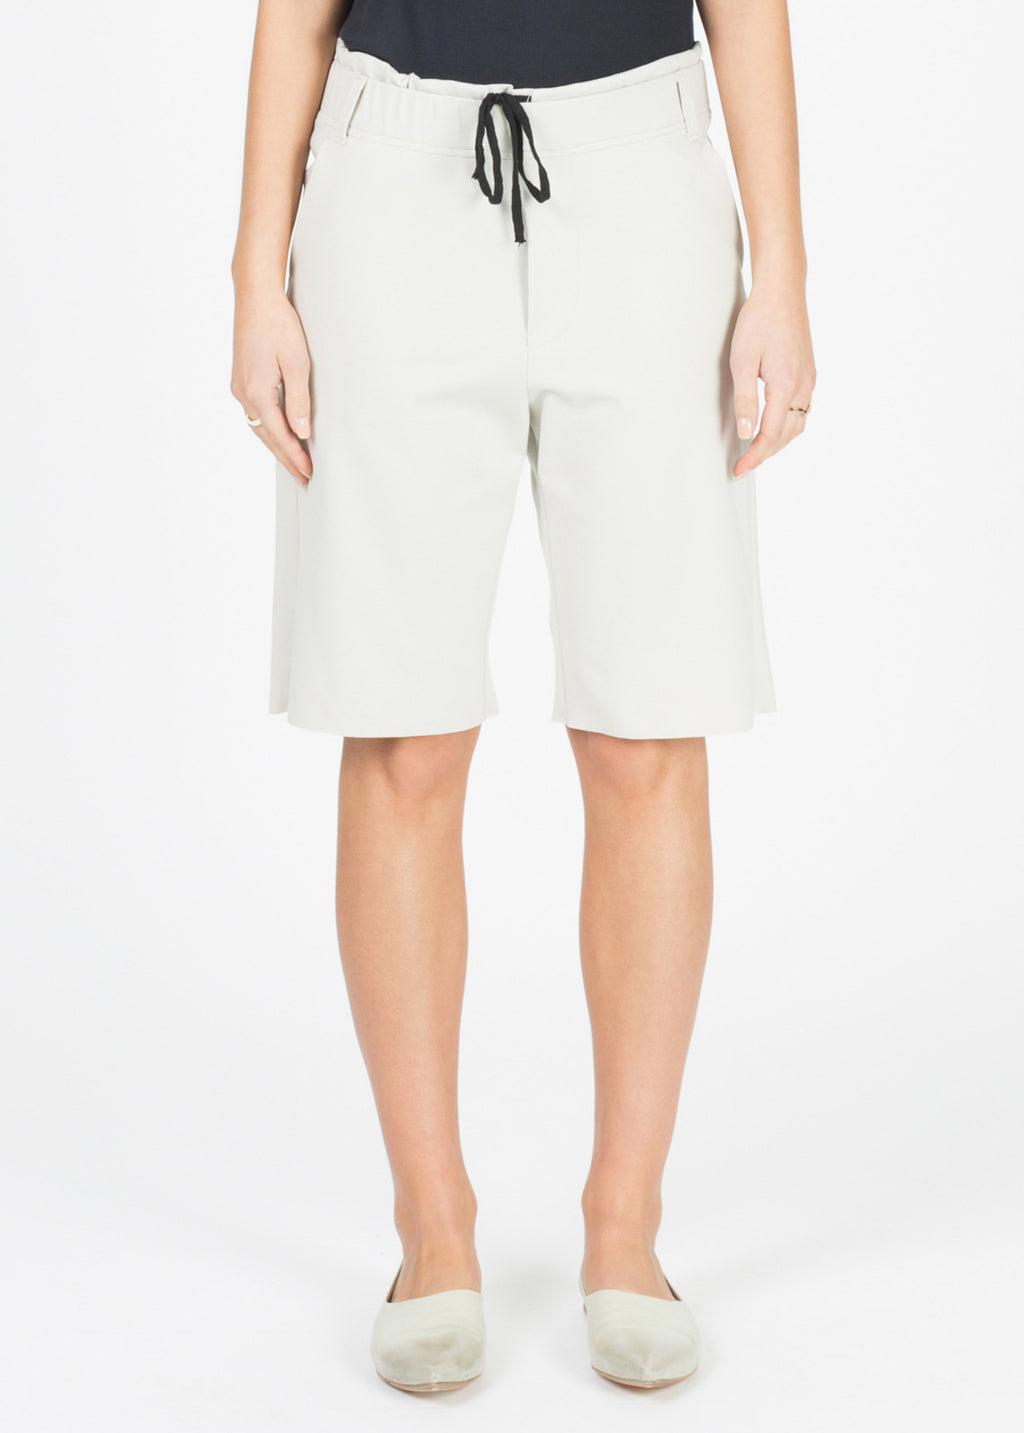 Viscose Blend Drawstring Short